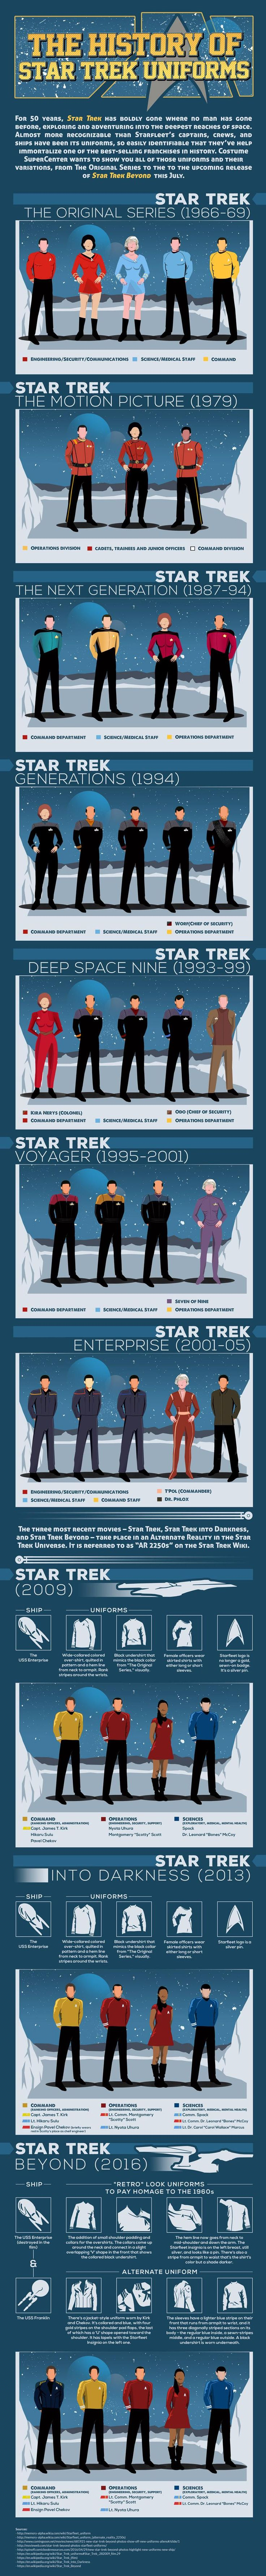 The History of Star Trek Uniforms That Will Beam You Away!